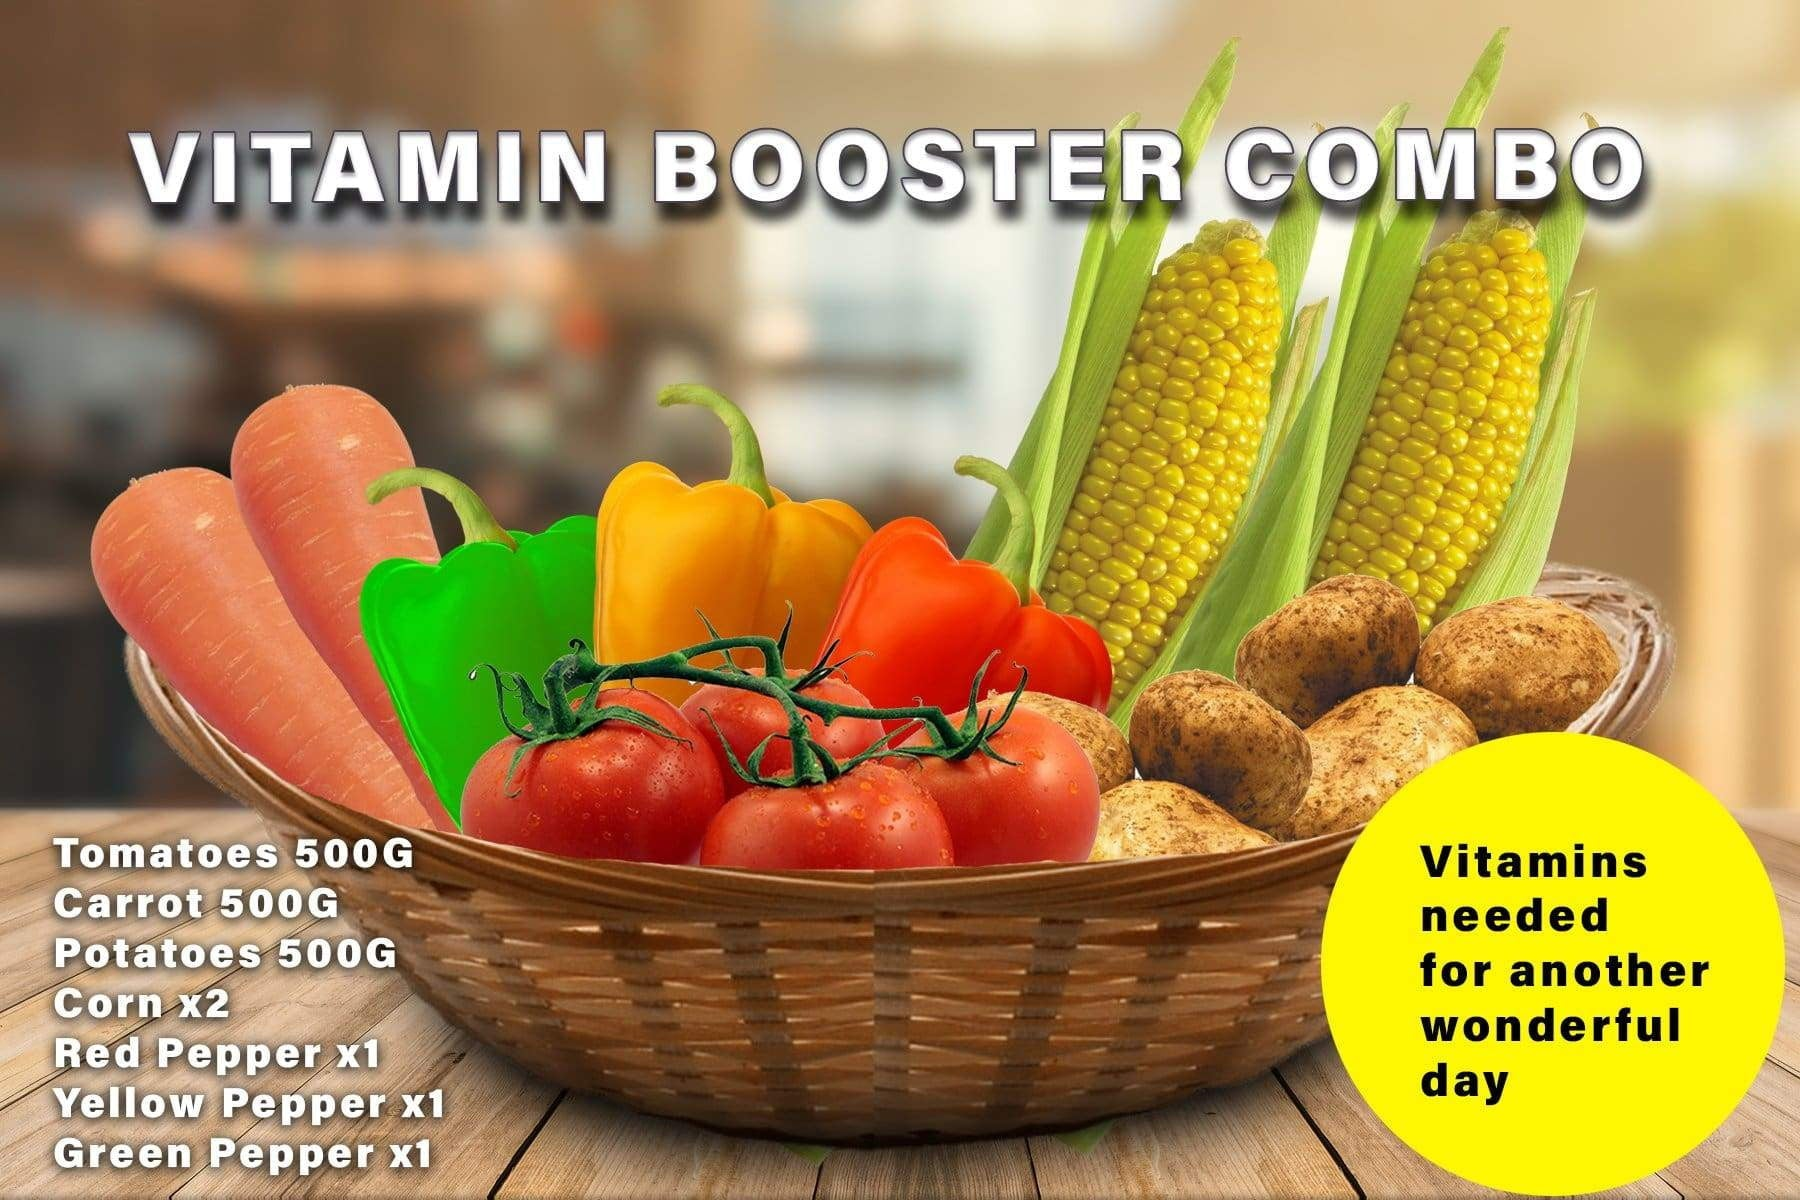 Penang Grocery Store Online Next Day Delivery is Offering Vitamin Booster Combo